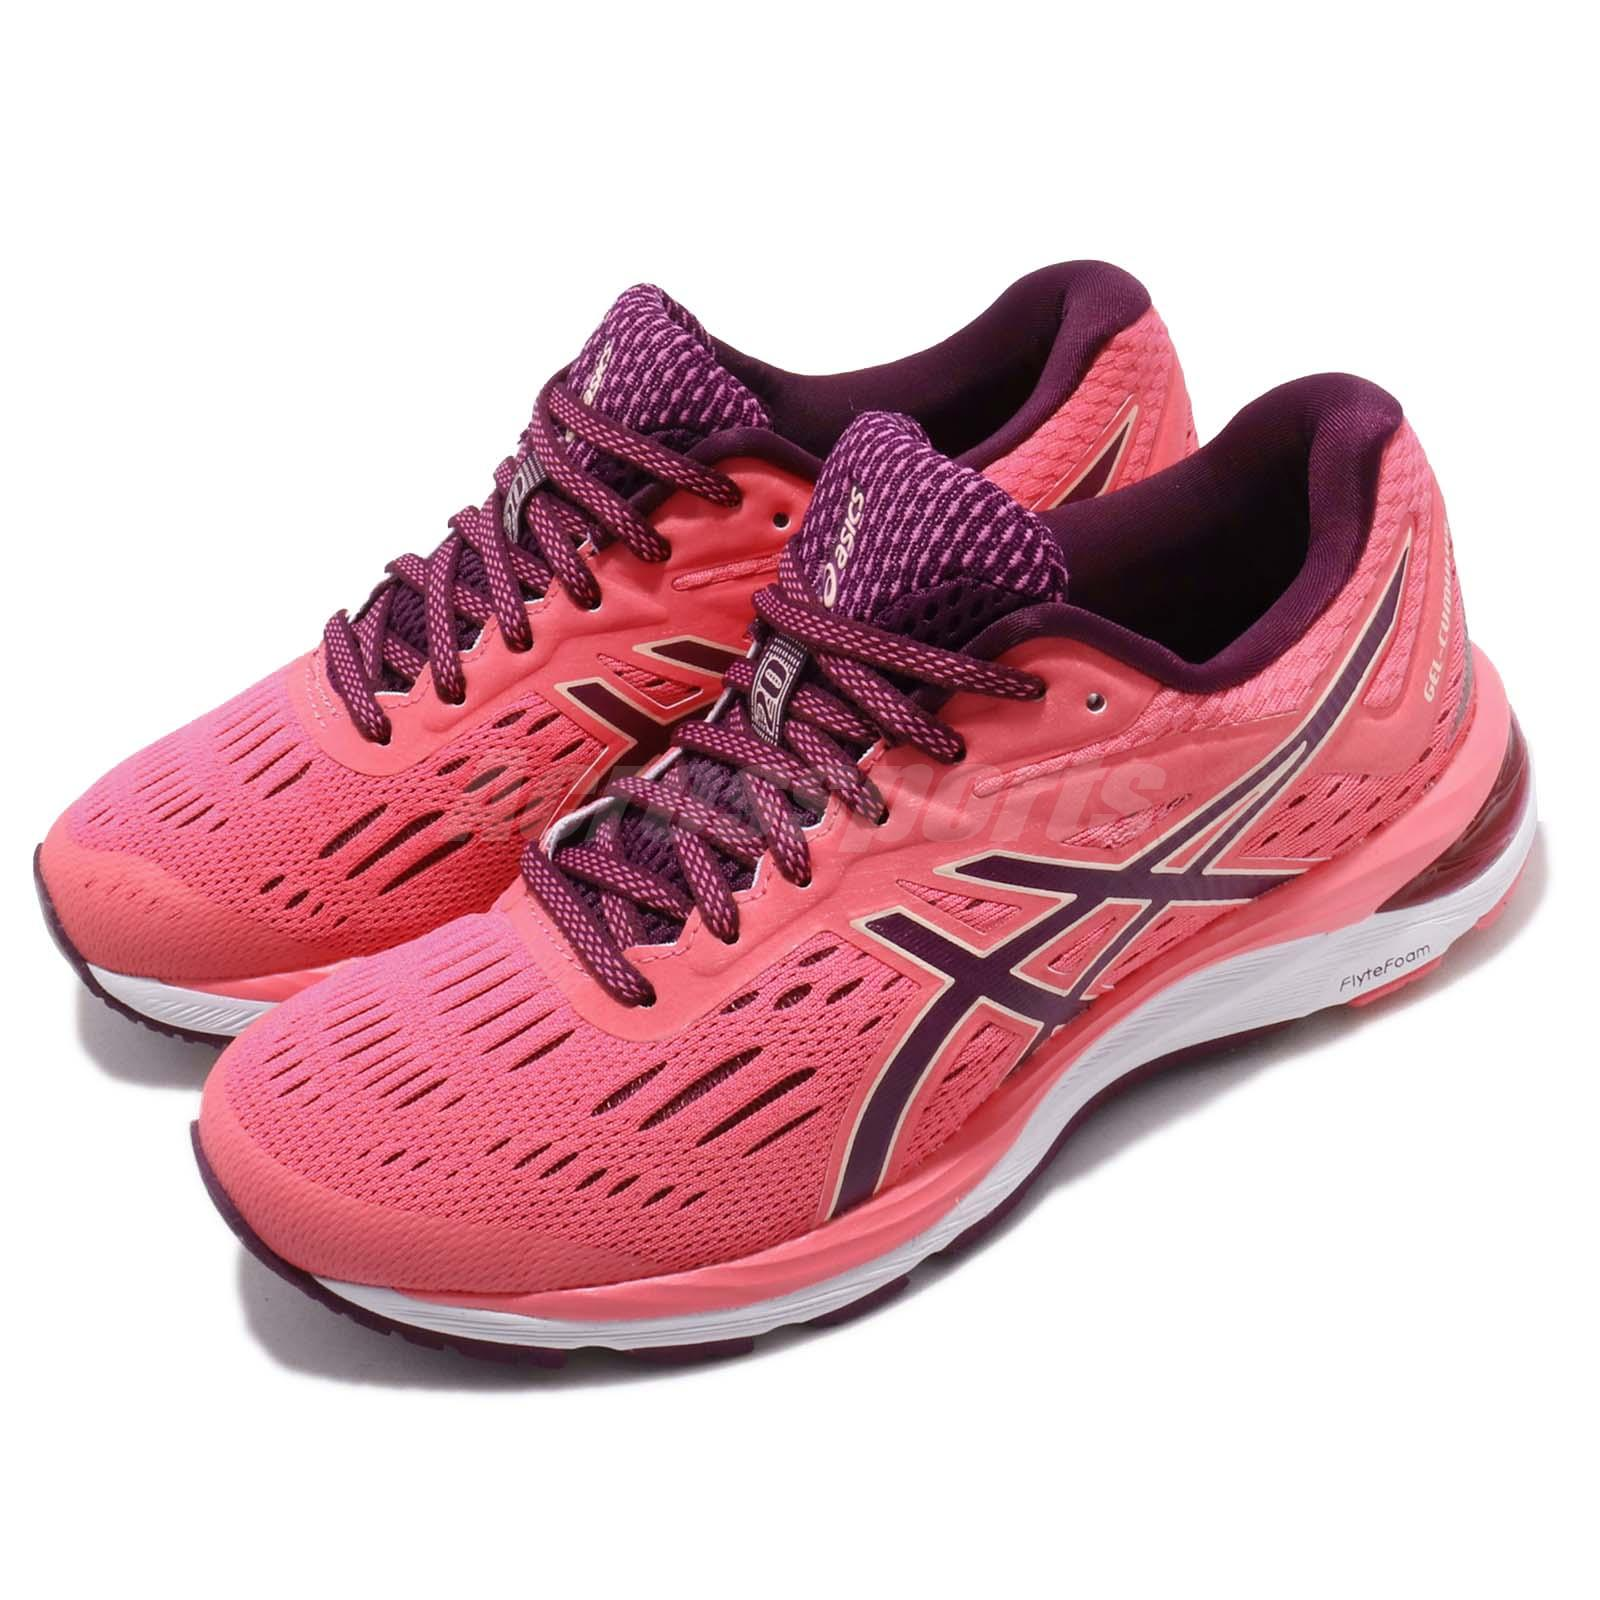 big sale a03cf fa157 Details about Asics Gel Cumulus 20 Pink Cameo Roselle Women Running Shoes  Sneaker 1012A008-700